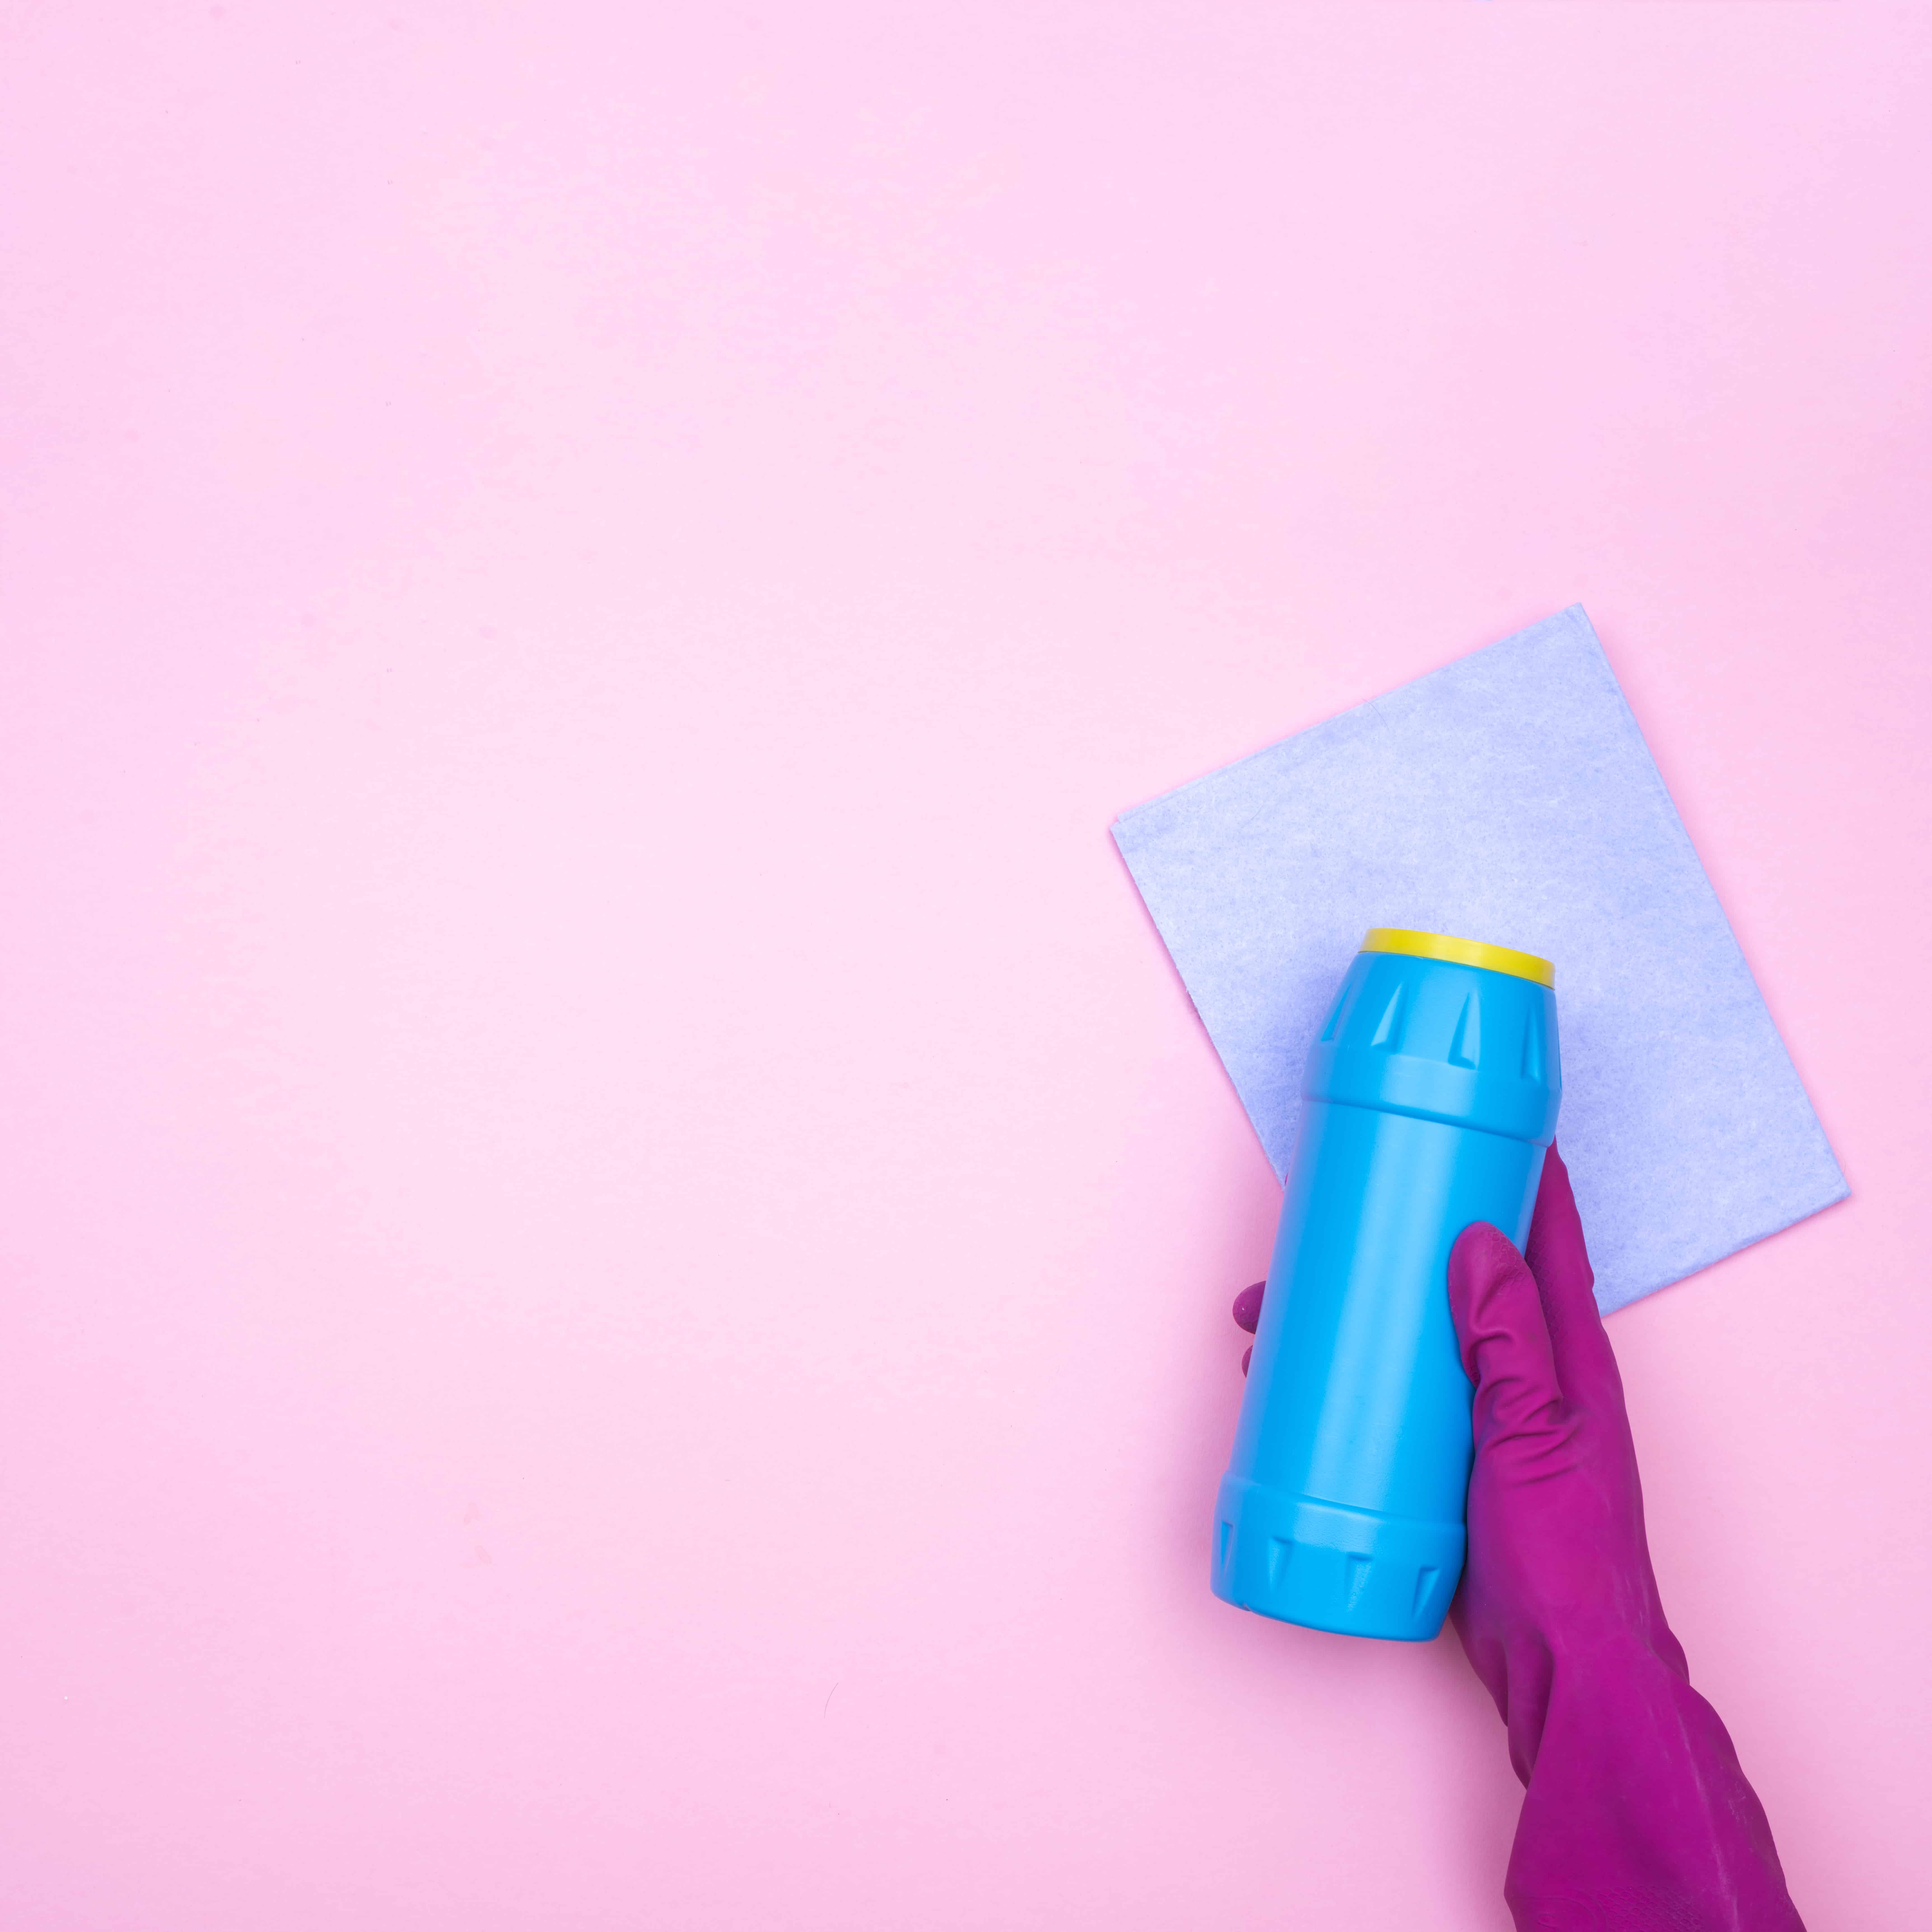 cleaning products on pink background